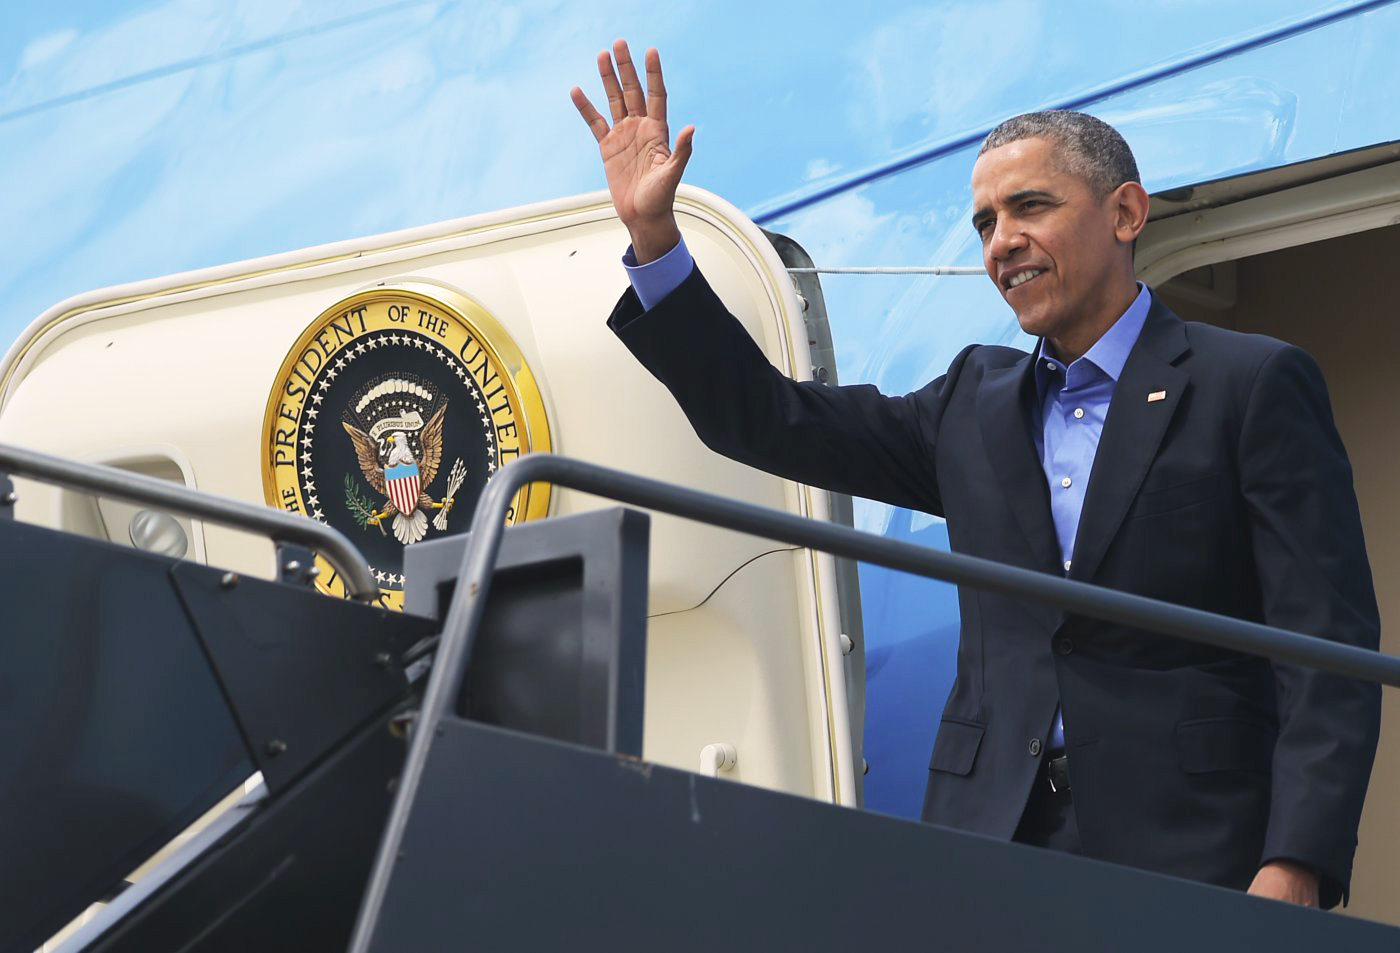 Watch President Obama's interview at SXSW Interactive